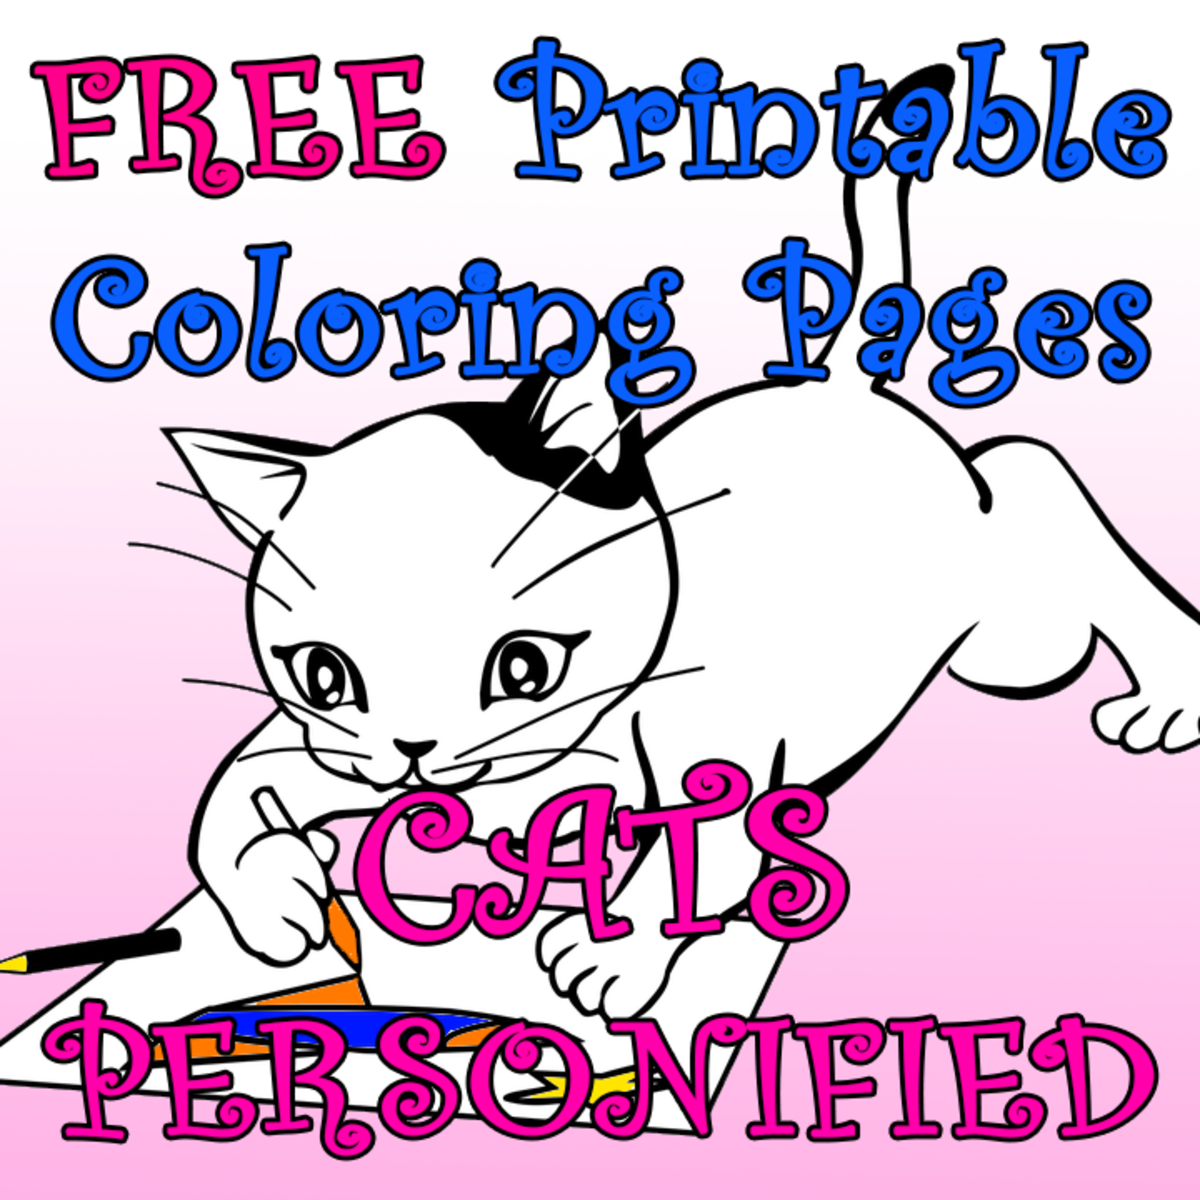 10 more free printable coloring pages for kids, featuring cats.